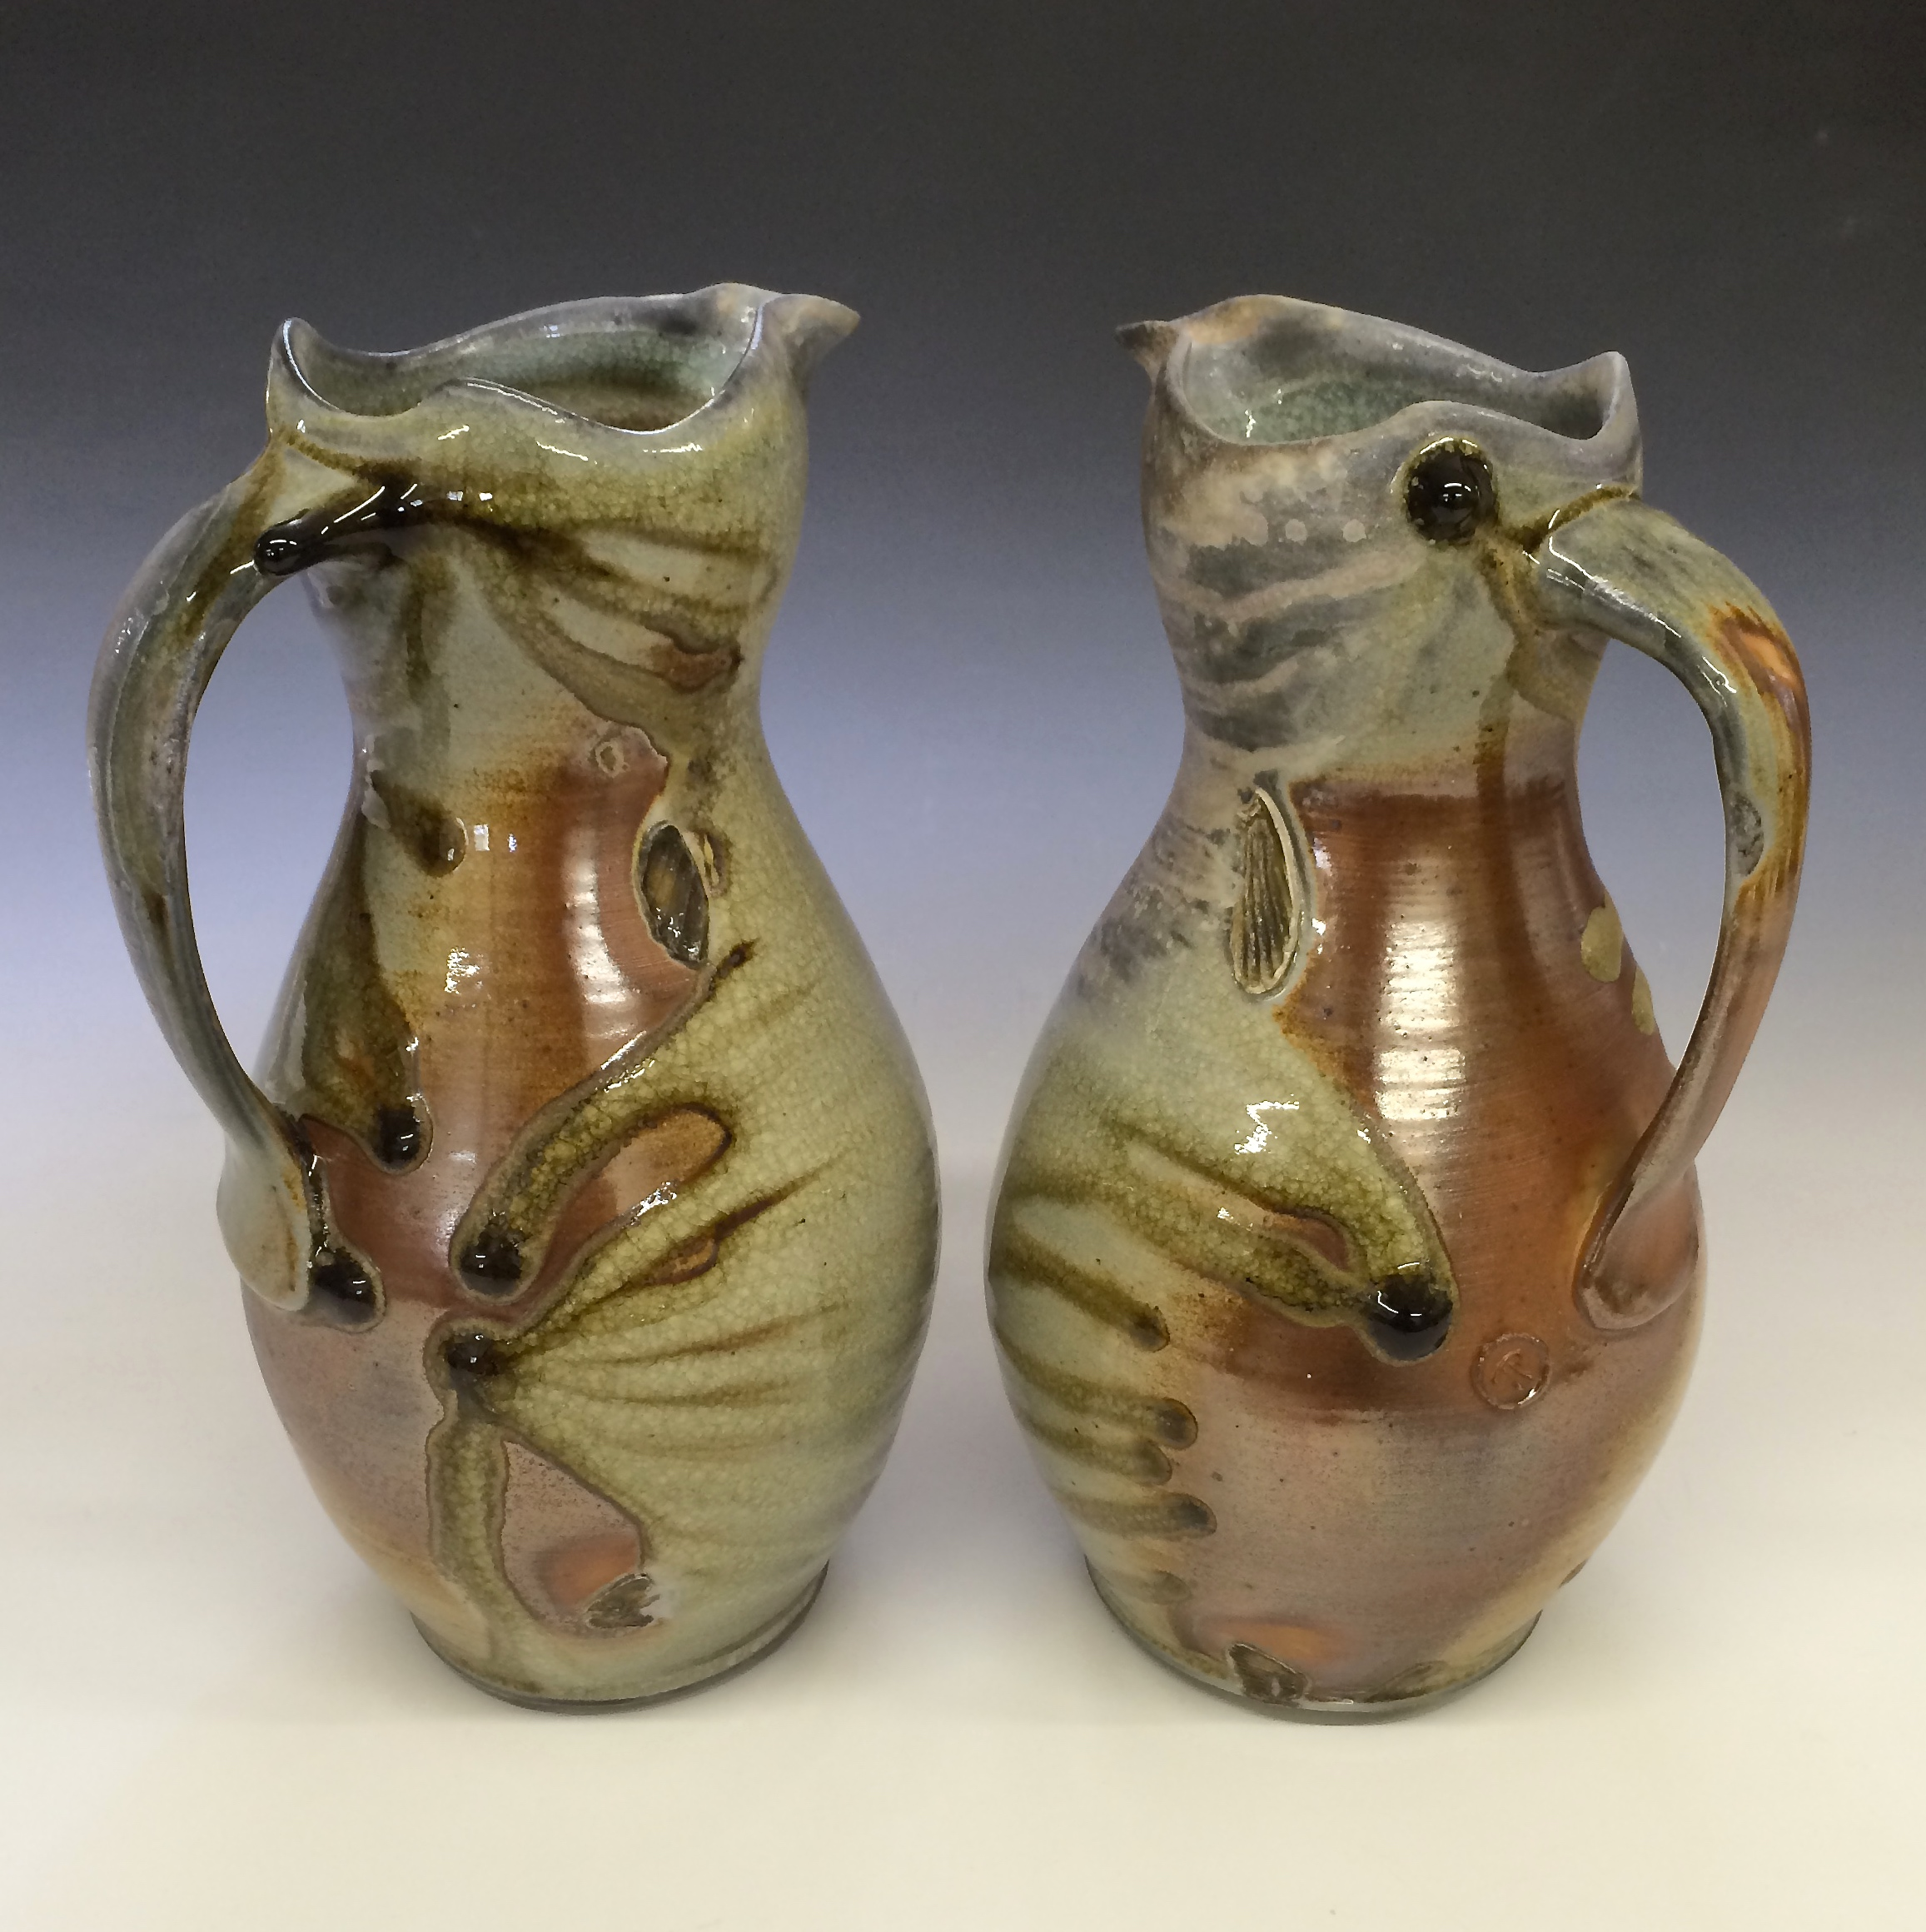 Wood Fired Pitchers Todd Pletcher Pottery